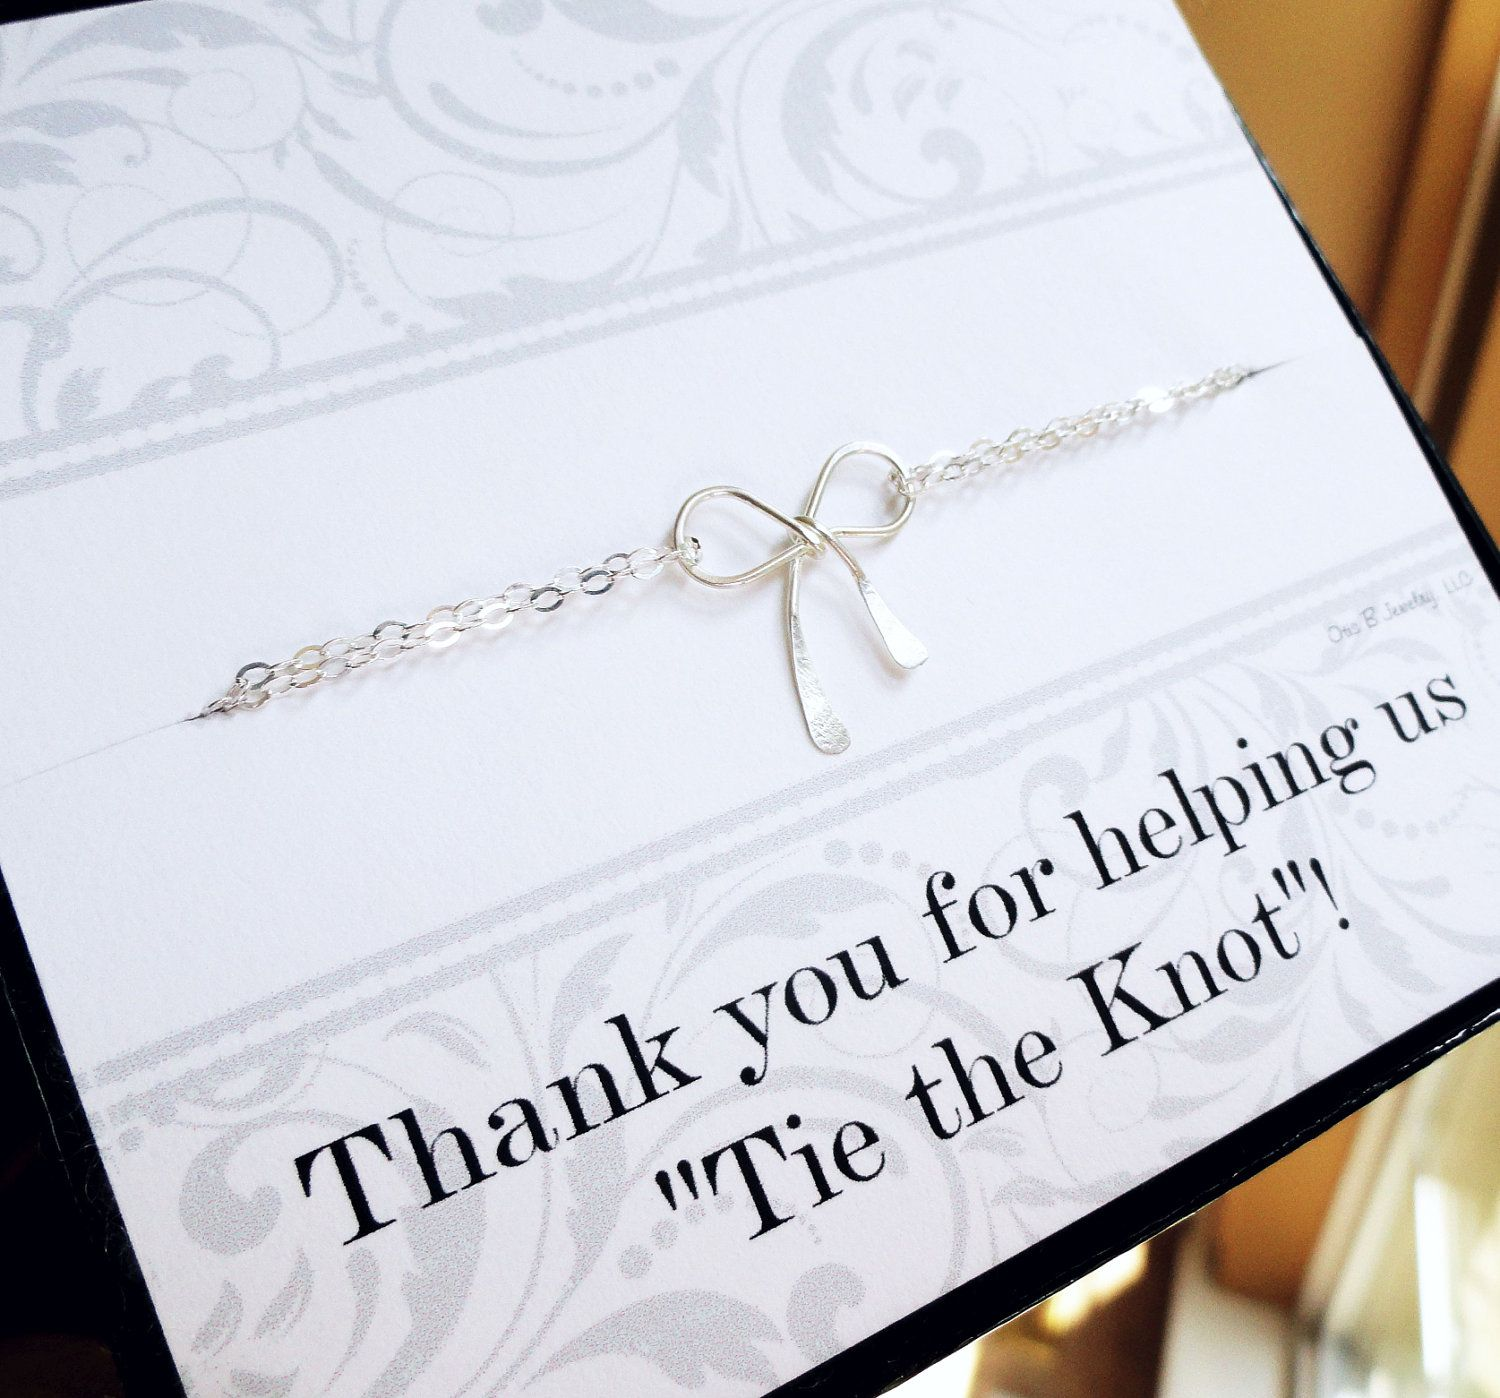 Thank you for helping us tie the knot!\